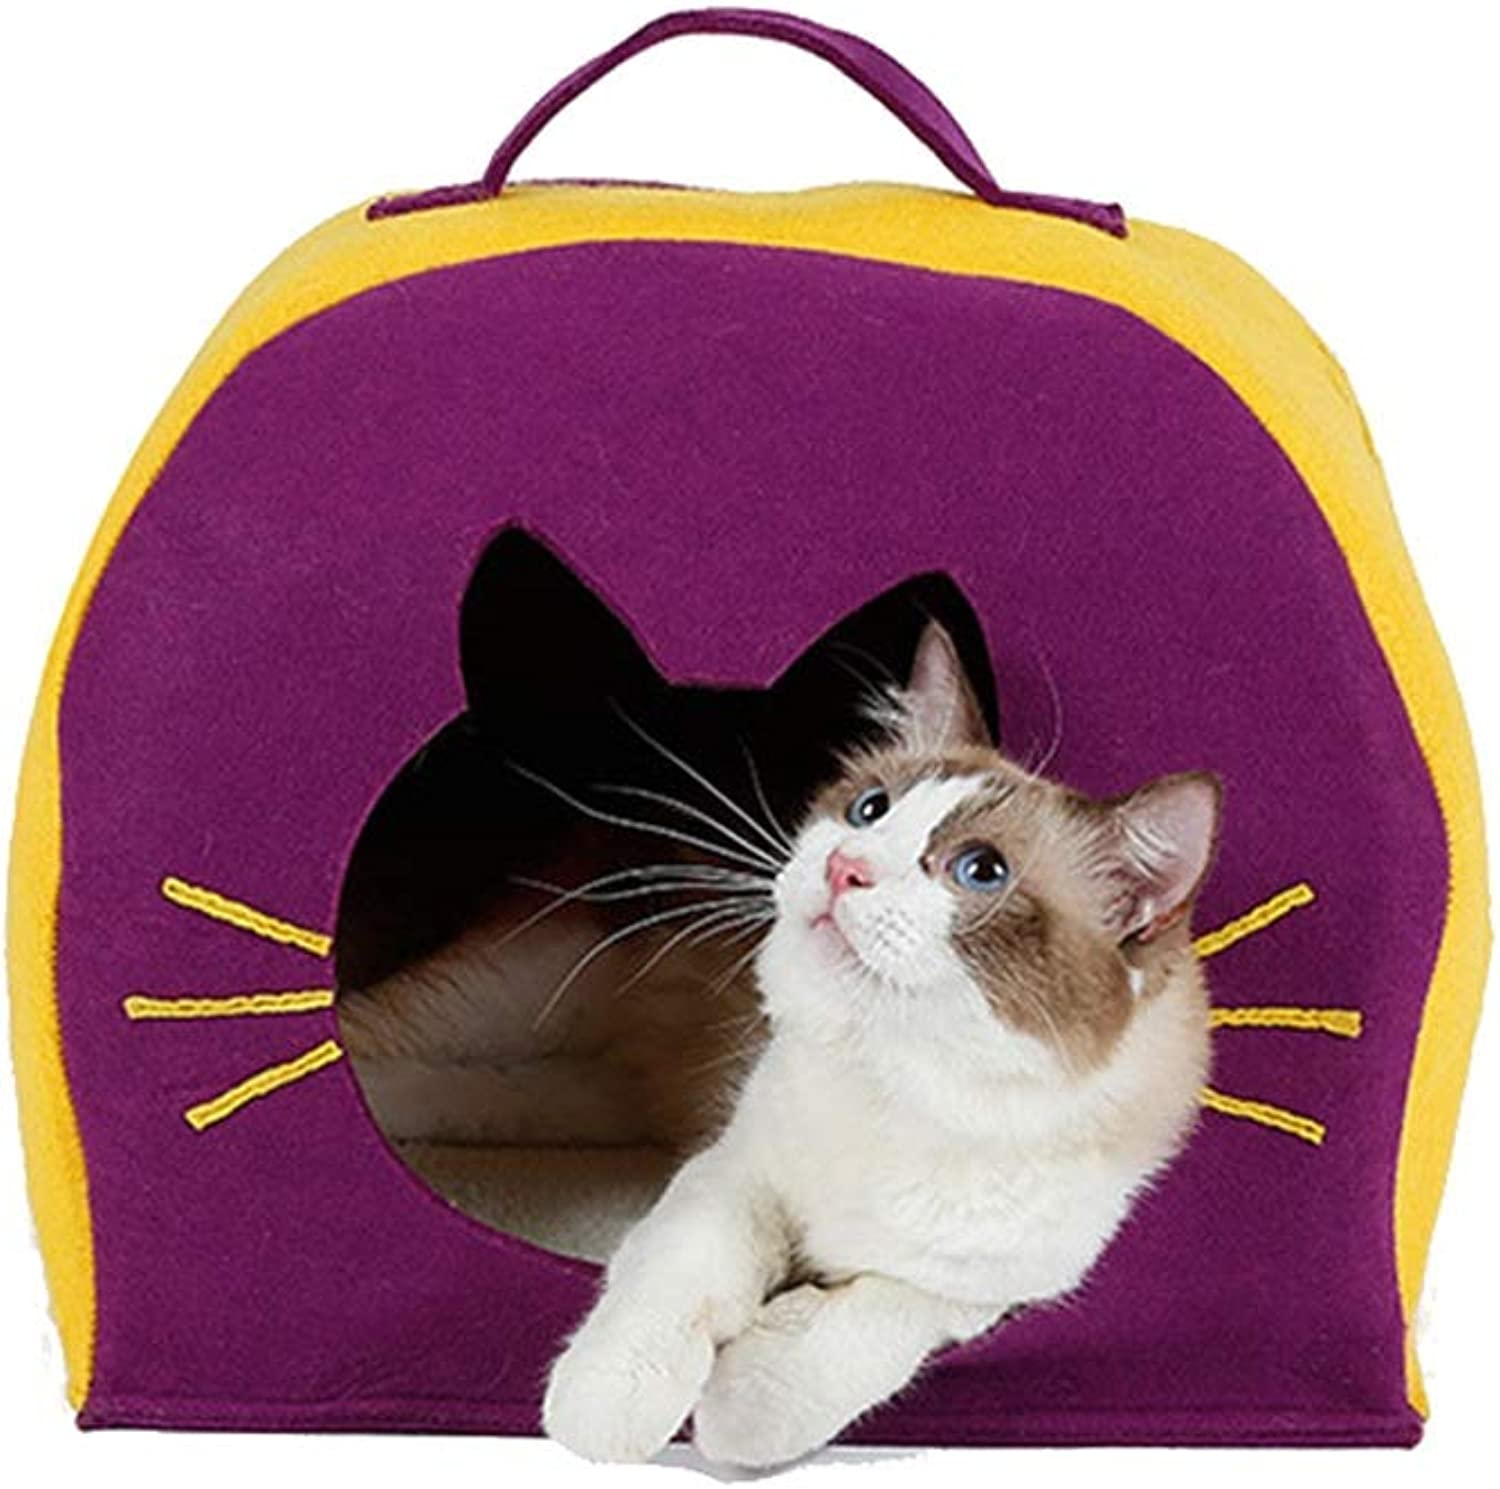 Liuxiaoqing Pet Bed for Cats Small Dogs Winter Washable Pet Warmer Cat Dog Bed House Natural Felt Cloth Cat House Cat Tent Yurt Soft Comfy Washable (color   Purple)